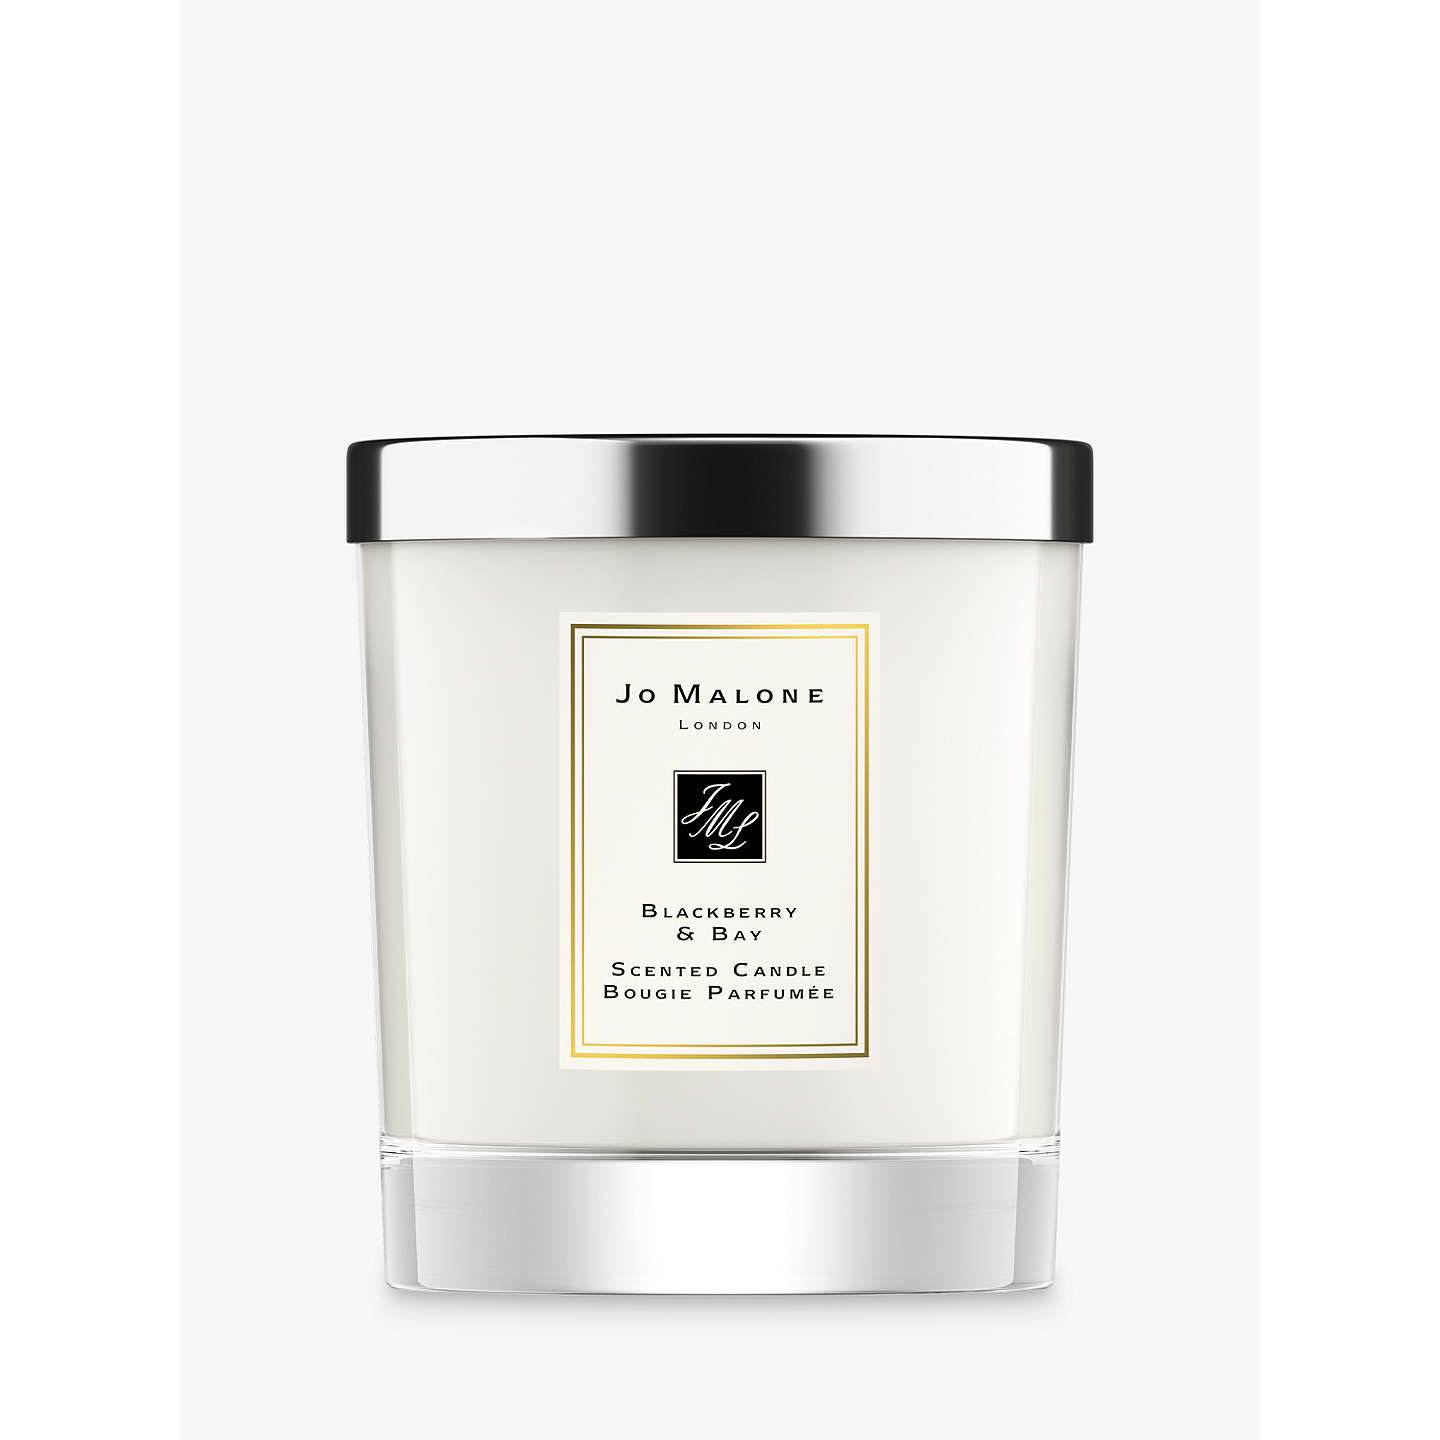 BuyJo Malone London Blackberry & Bay Home Candle, 200g Online at johnlewis.com